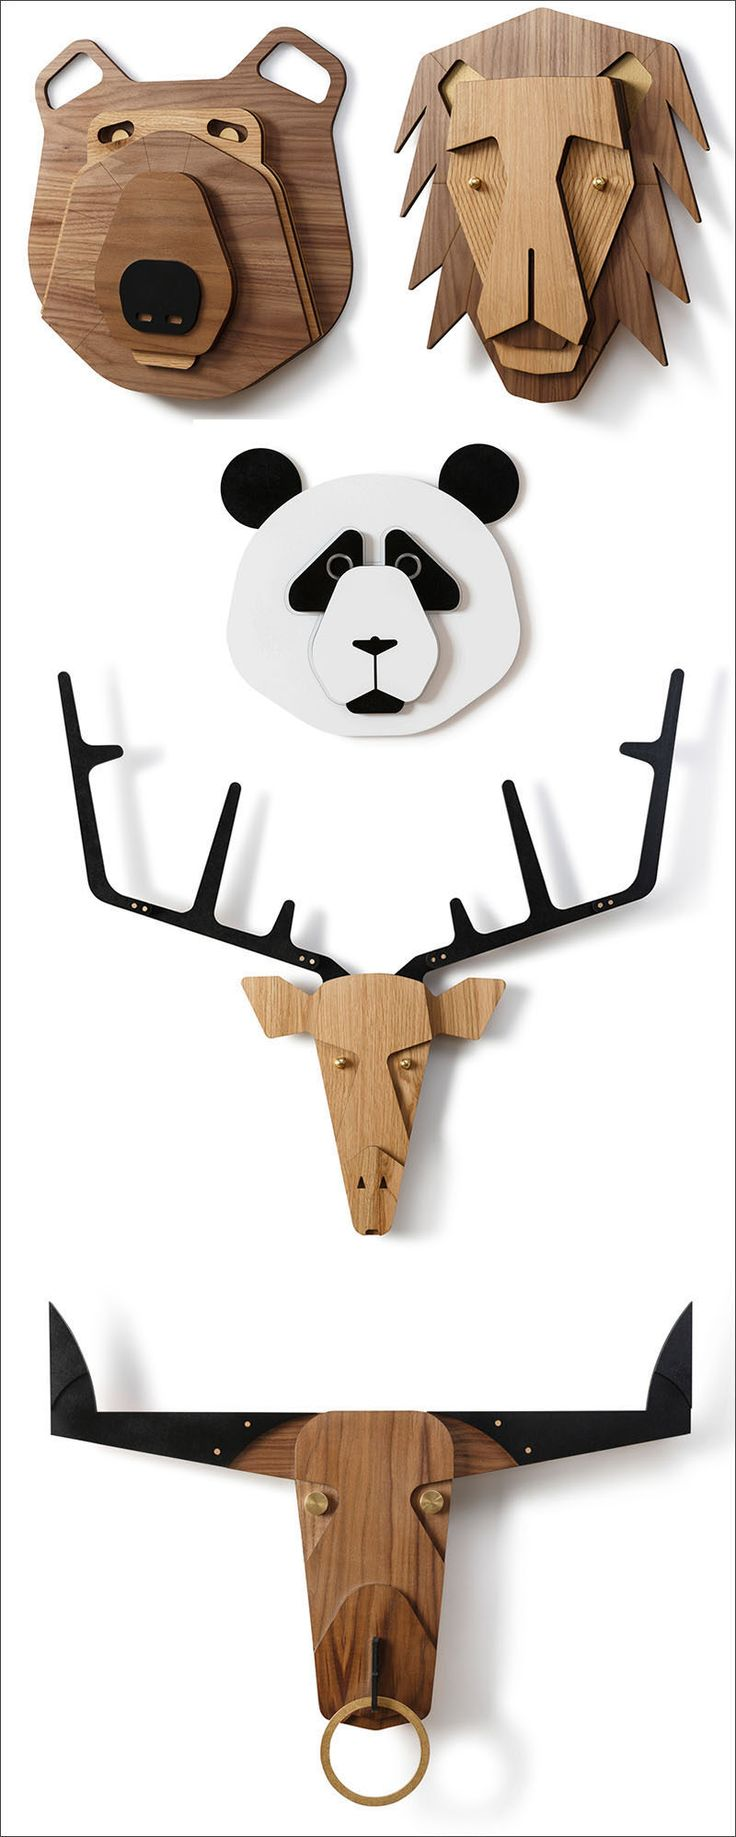 Tzachi Nevo has launched 'Hunter Wall', a collection of wood taxidermy animal heads inspired by African masks that can be hung alone or as a group to create whimsical wall decor.